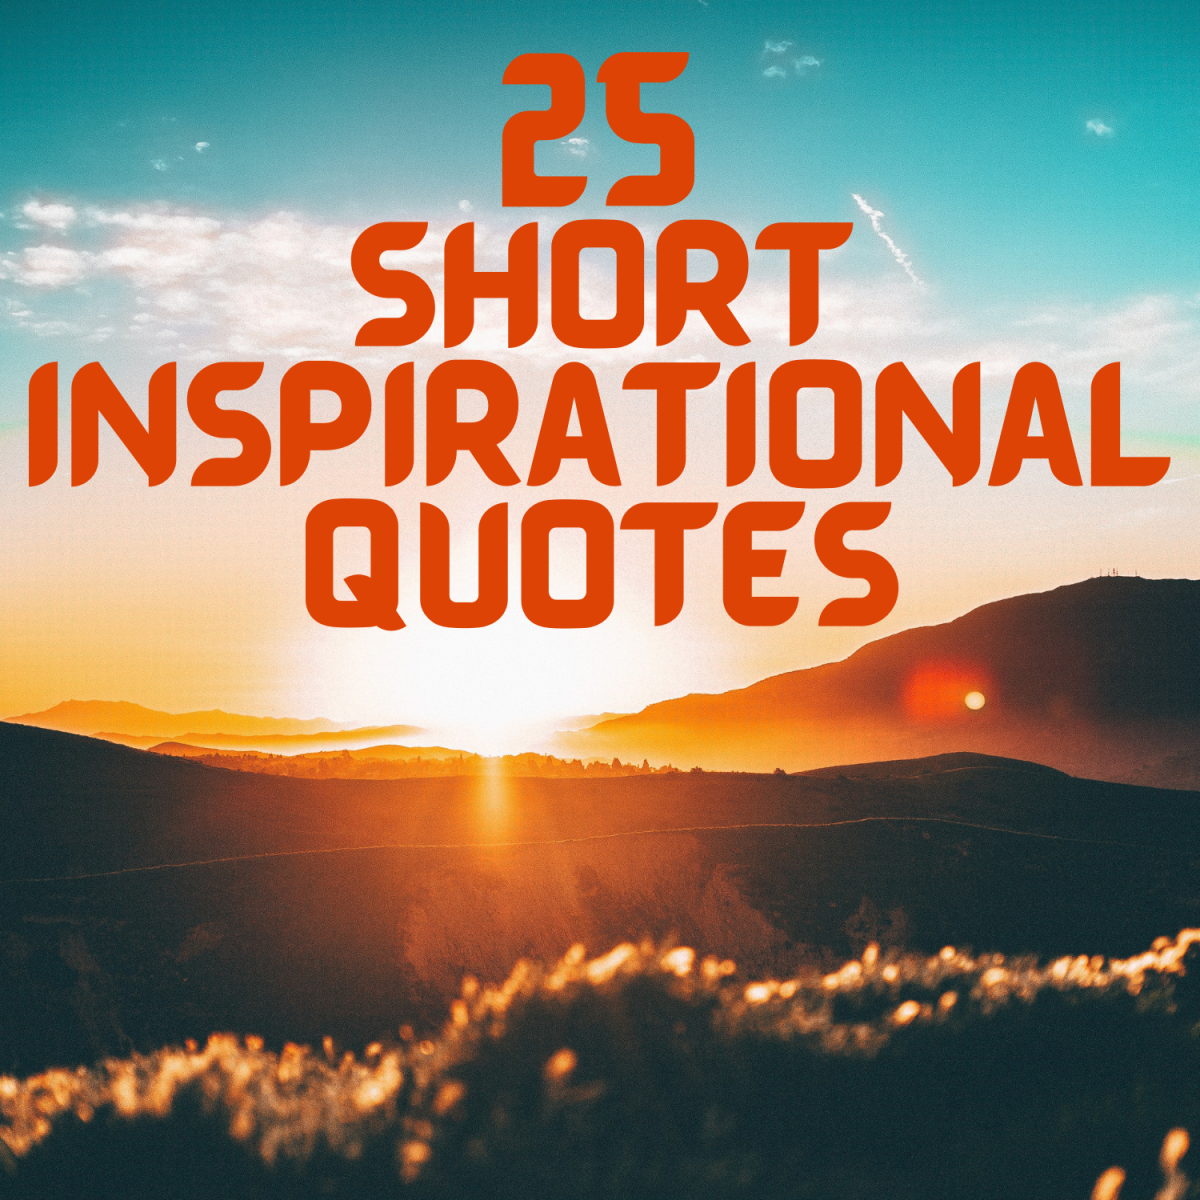 25 Short Inspirational Quotes And Sayings Letterpile